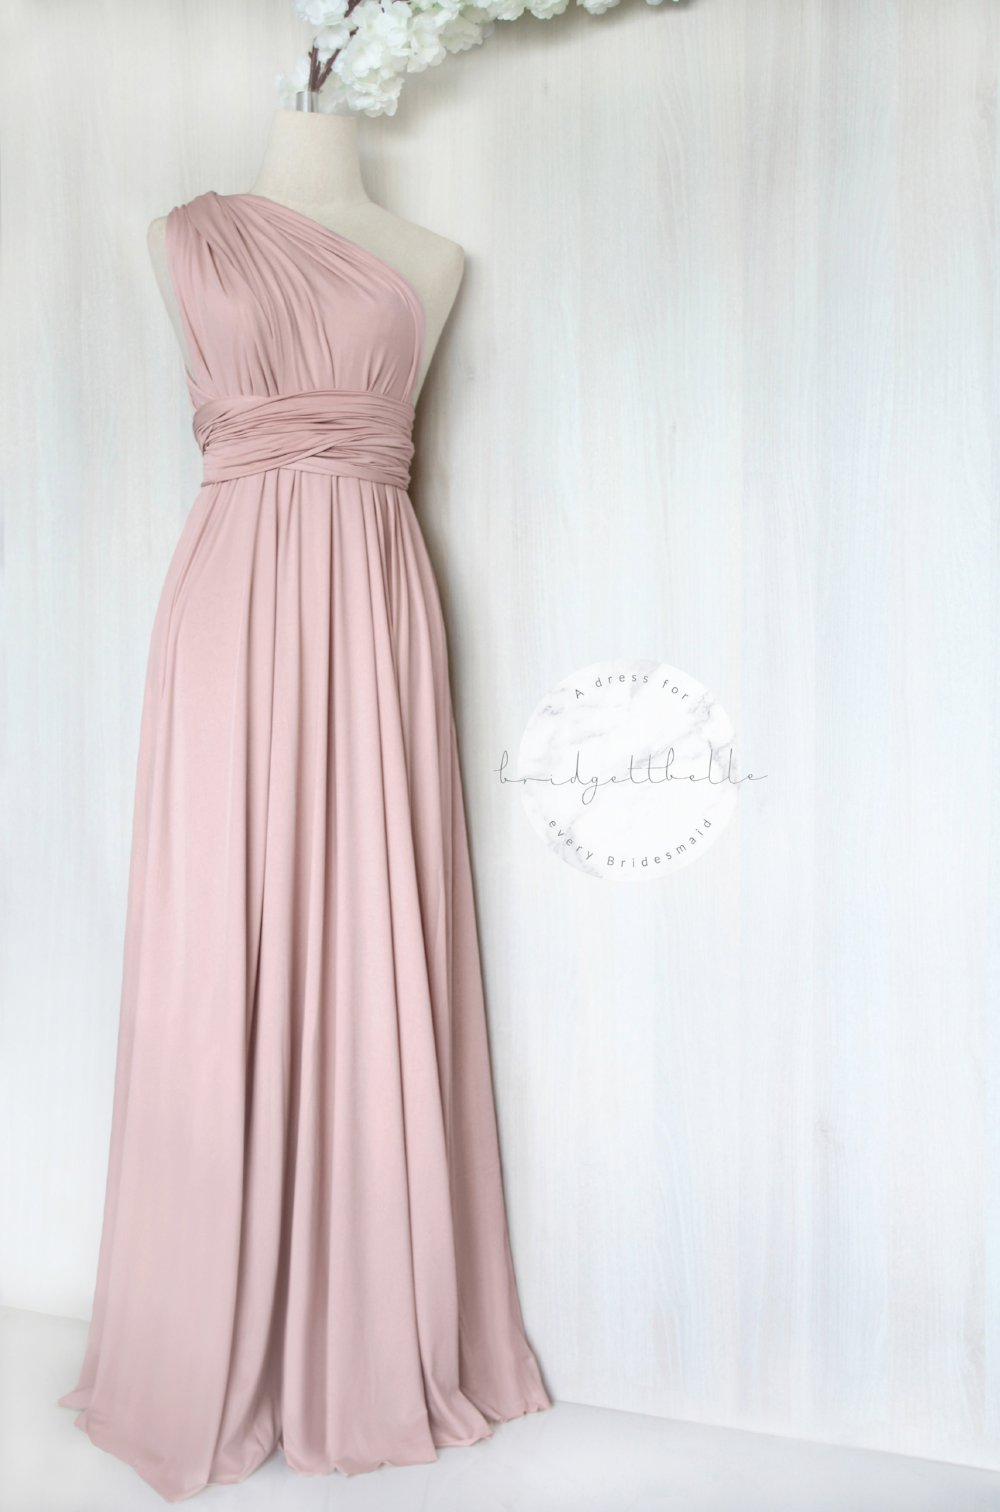 BB Floor length Maxi Infinity Multiway Convertible Formal Prom Bridesmaid dress in Peach Regular /& Plus size